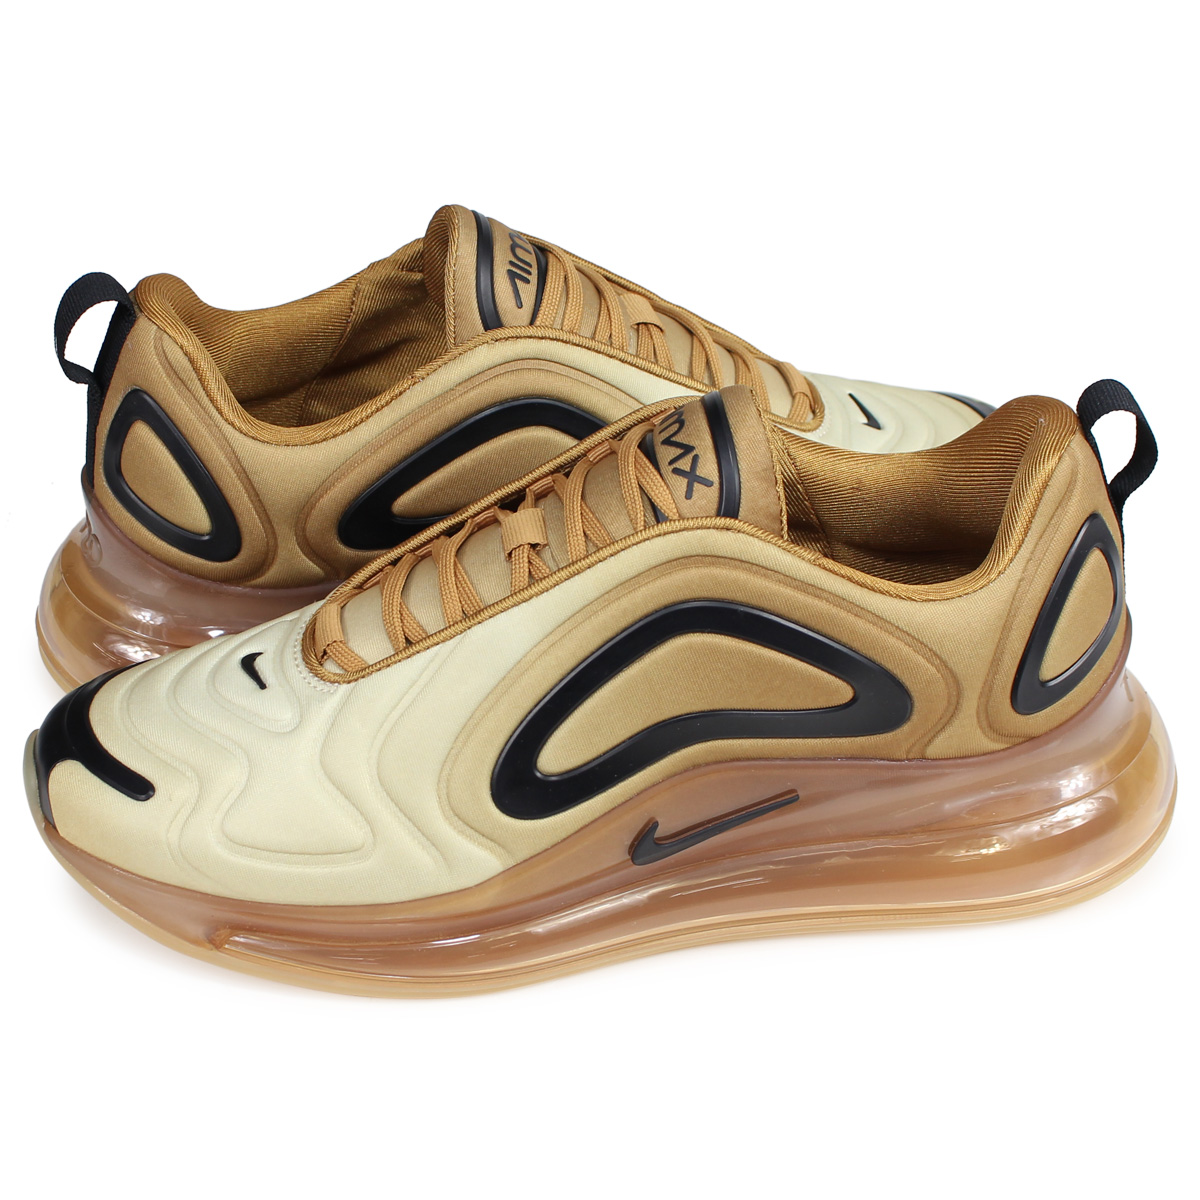 Nike NIKE Air Max 720 sneakers men AIR MAX 720 gold AO2924 700 [193]